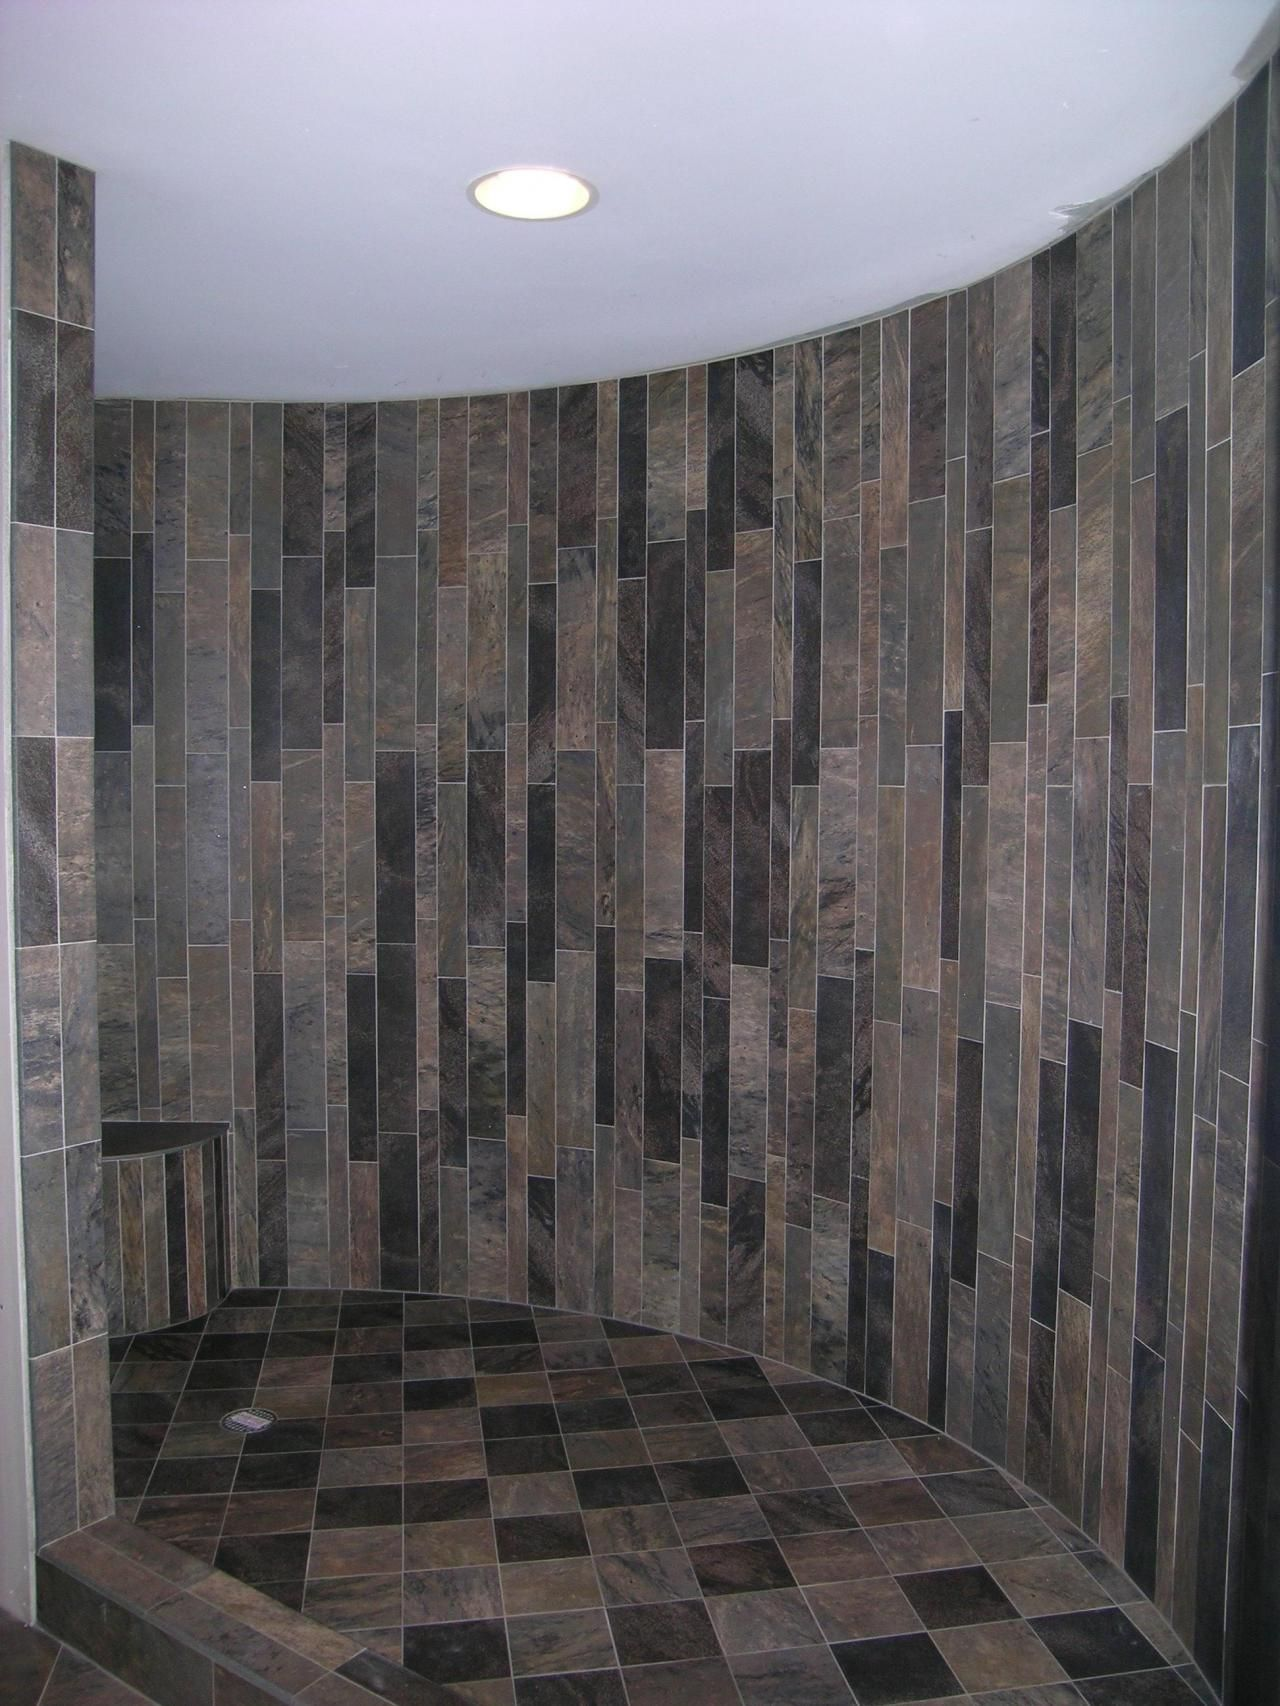 staggering wood wall tile. Staggered porcelain tile on curved shower wall  bath Pinterest